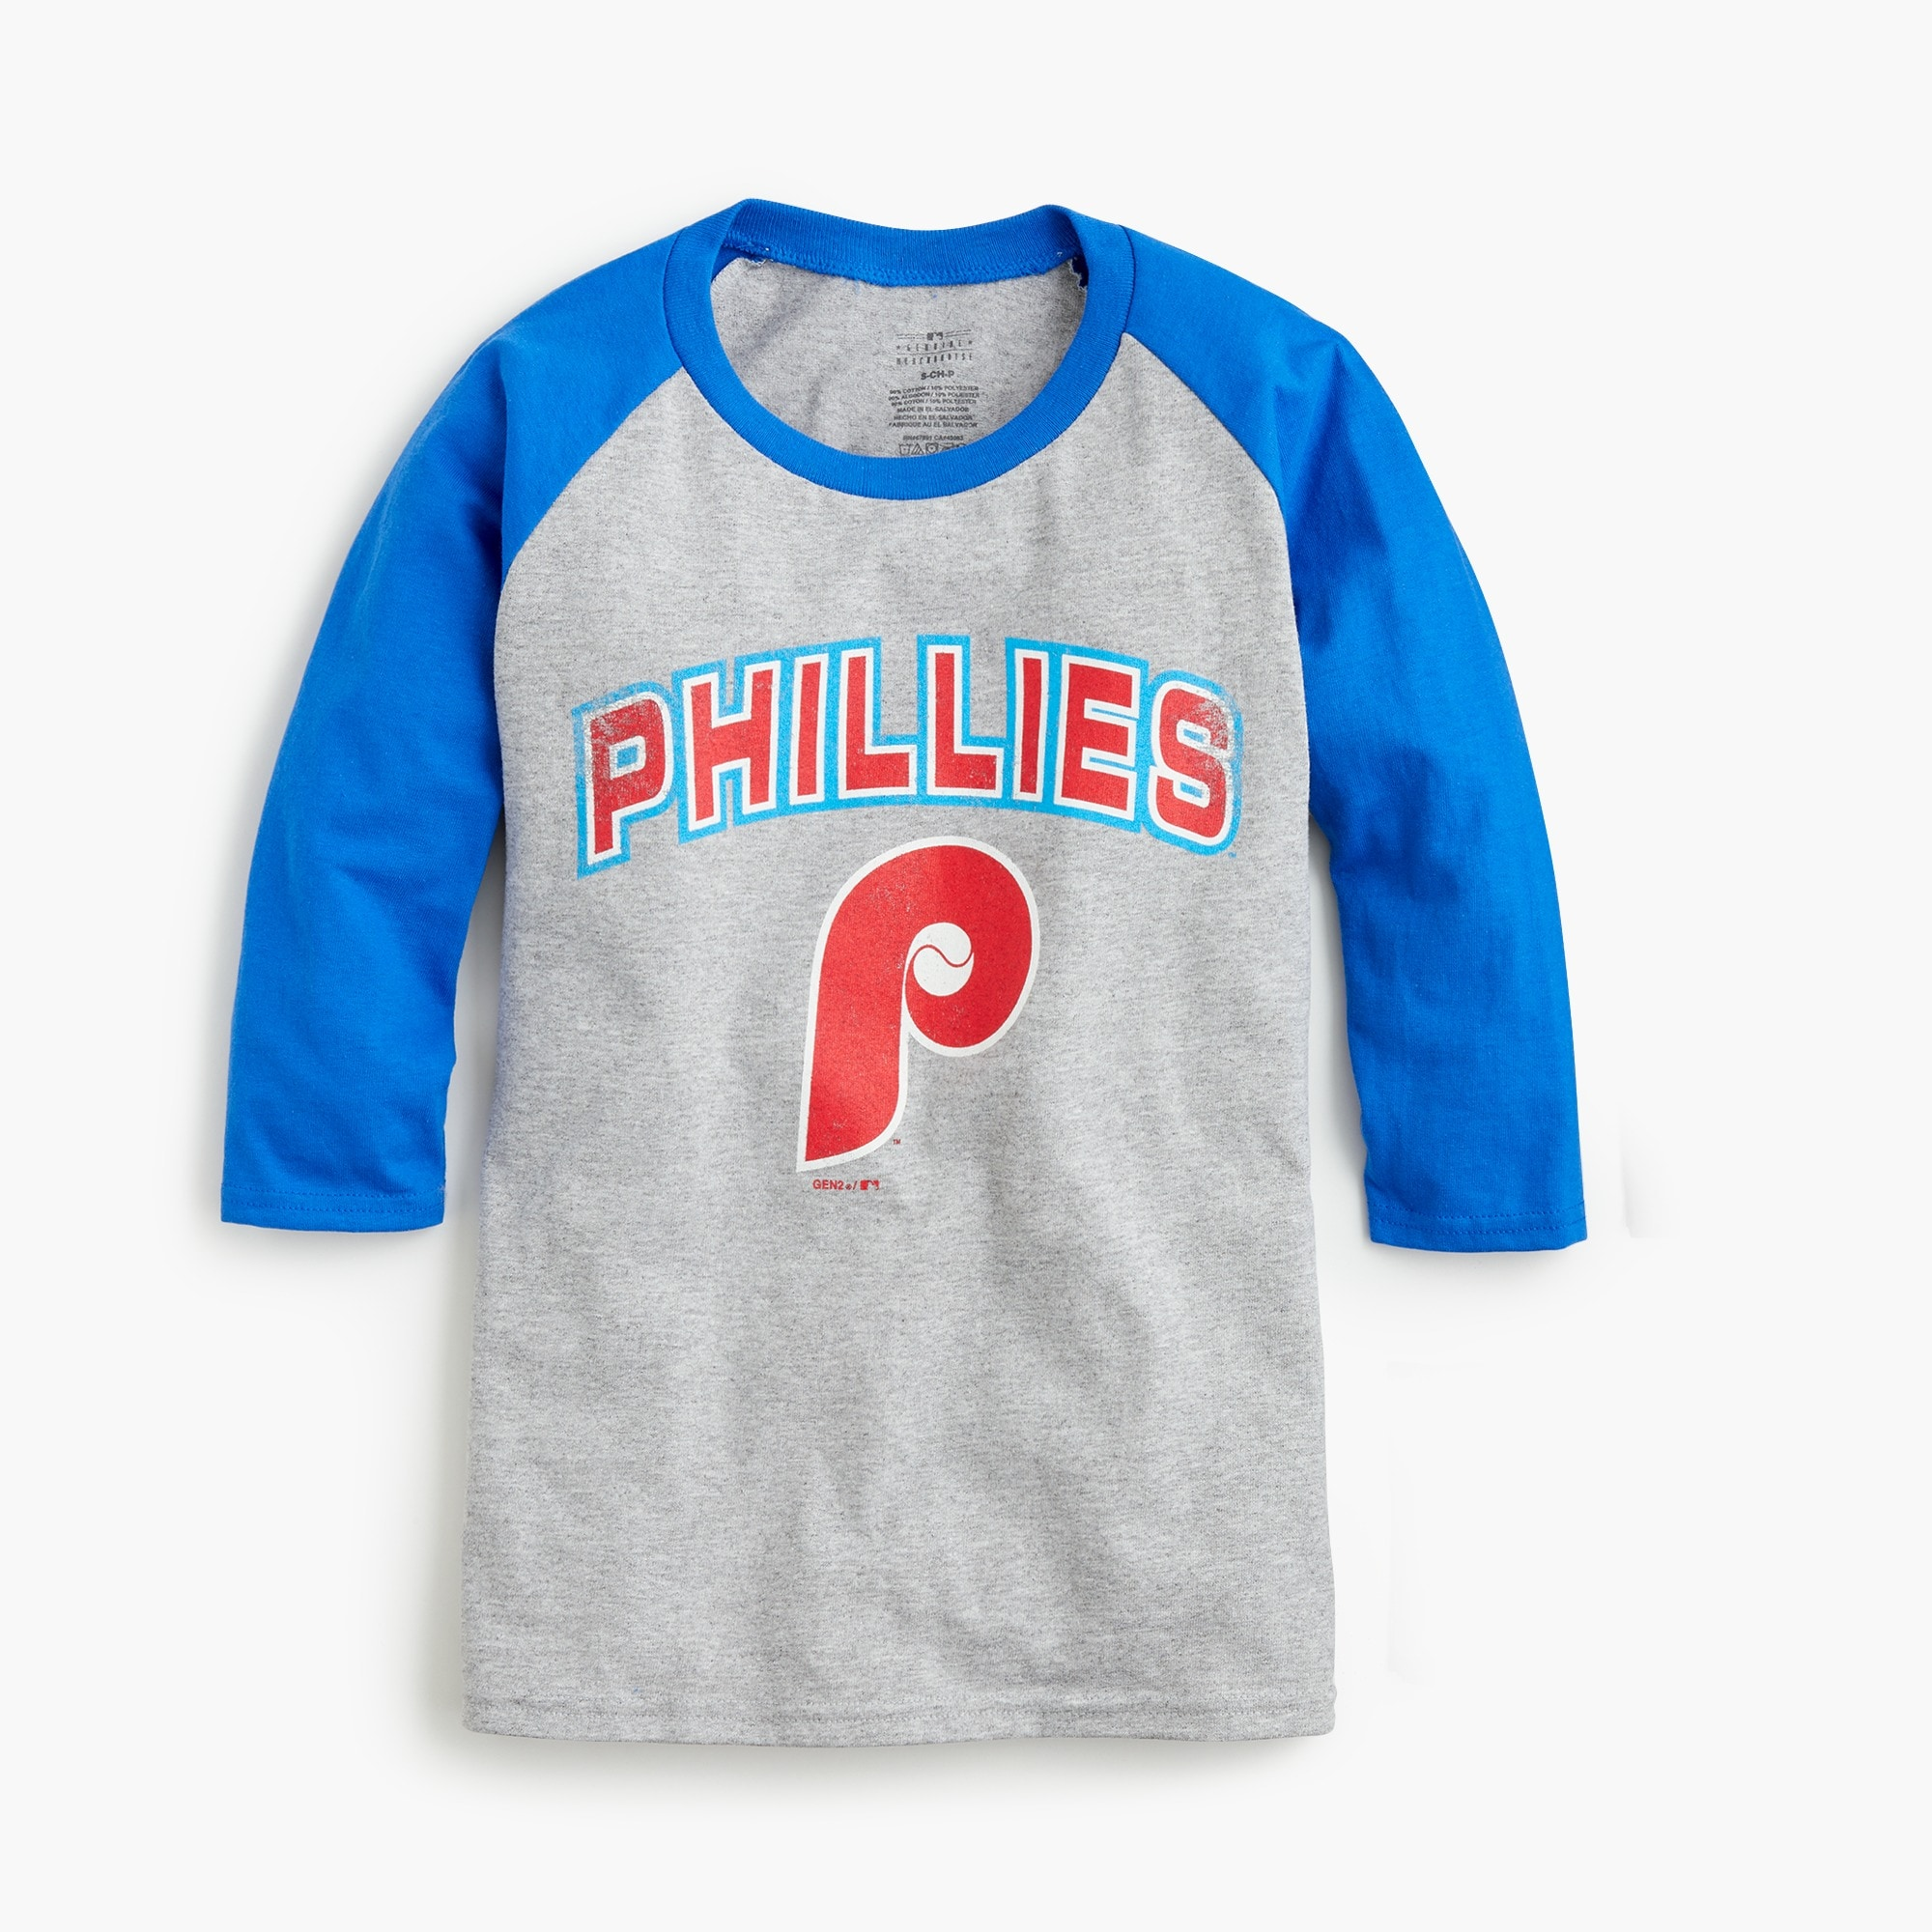 Kids' Philadelphia Phillies baseball T-shirt boy new arrivals c